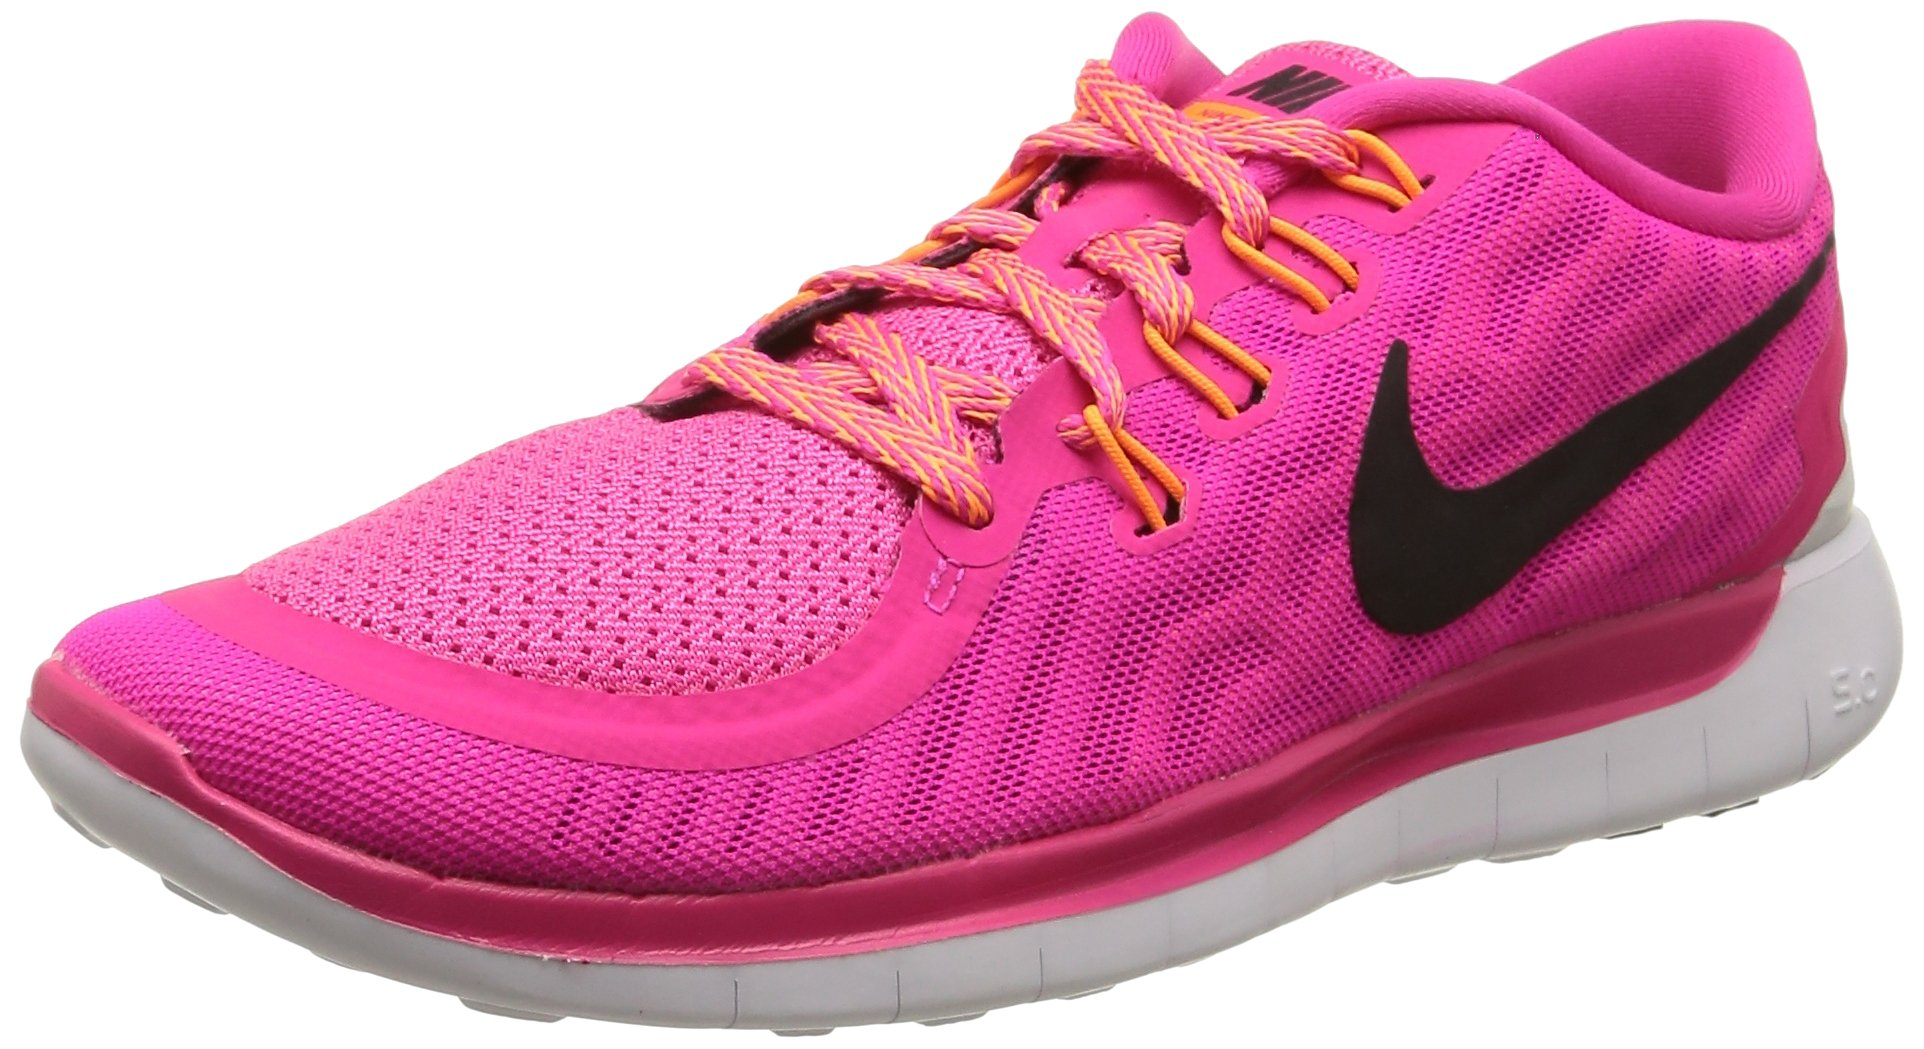 991ad48bc99b Galleon - Nike Women s Free 5.0 Running Shoes Pink Foil Pink Pow Bright  Citrus Black Size 7 M US